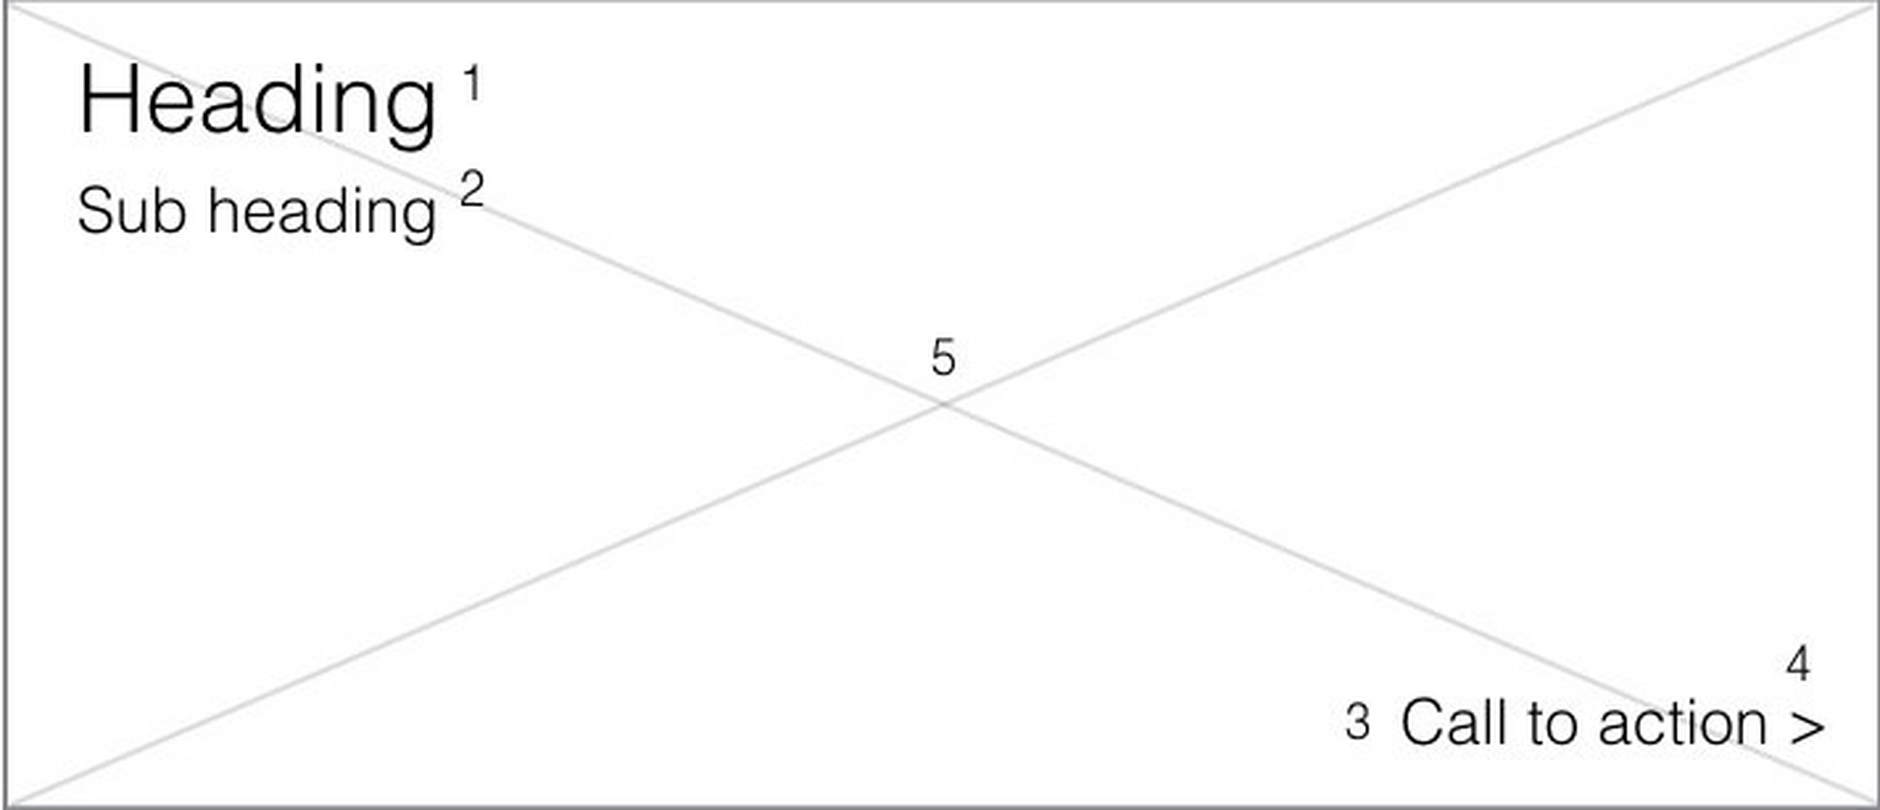 The structure of the example banner